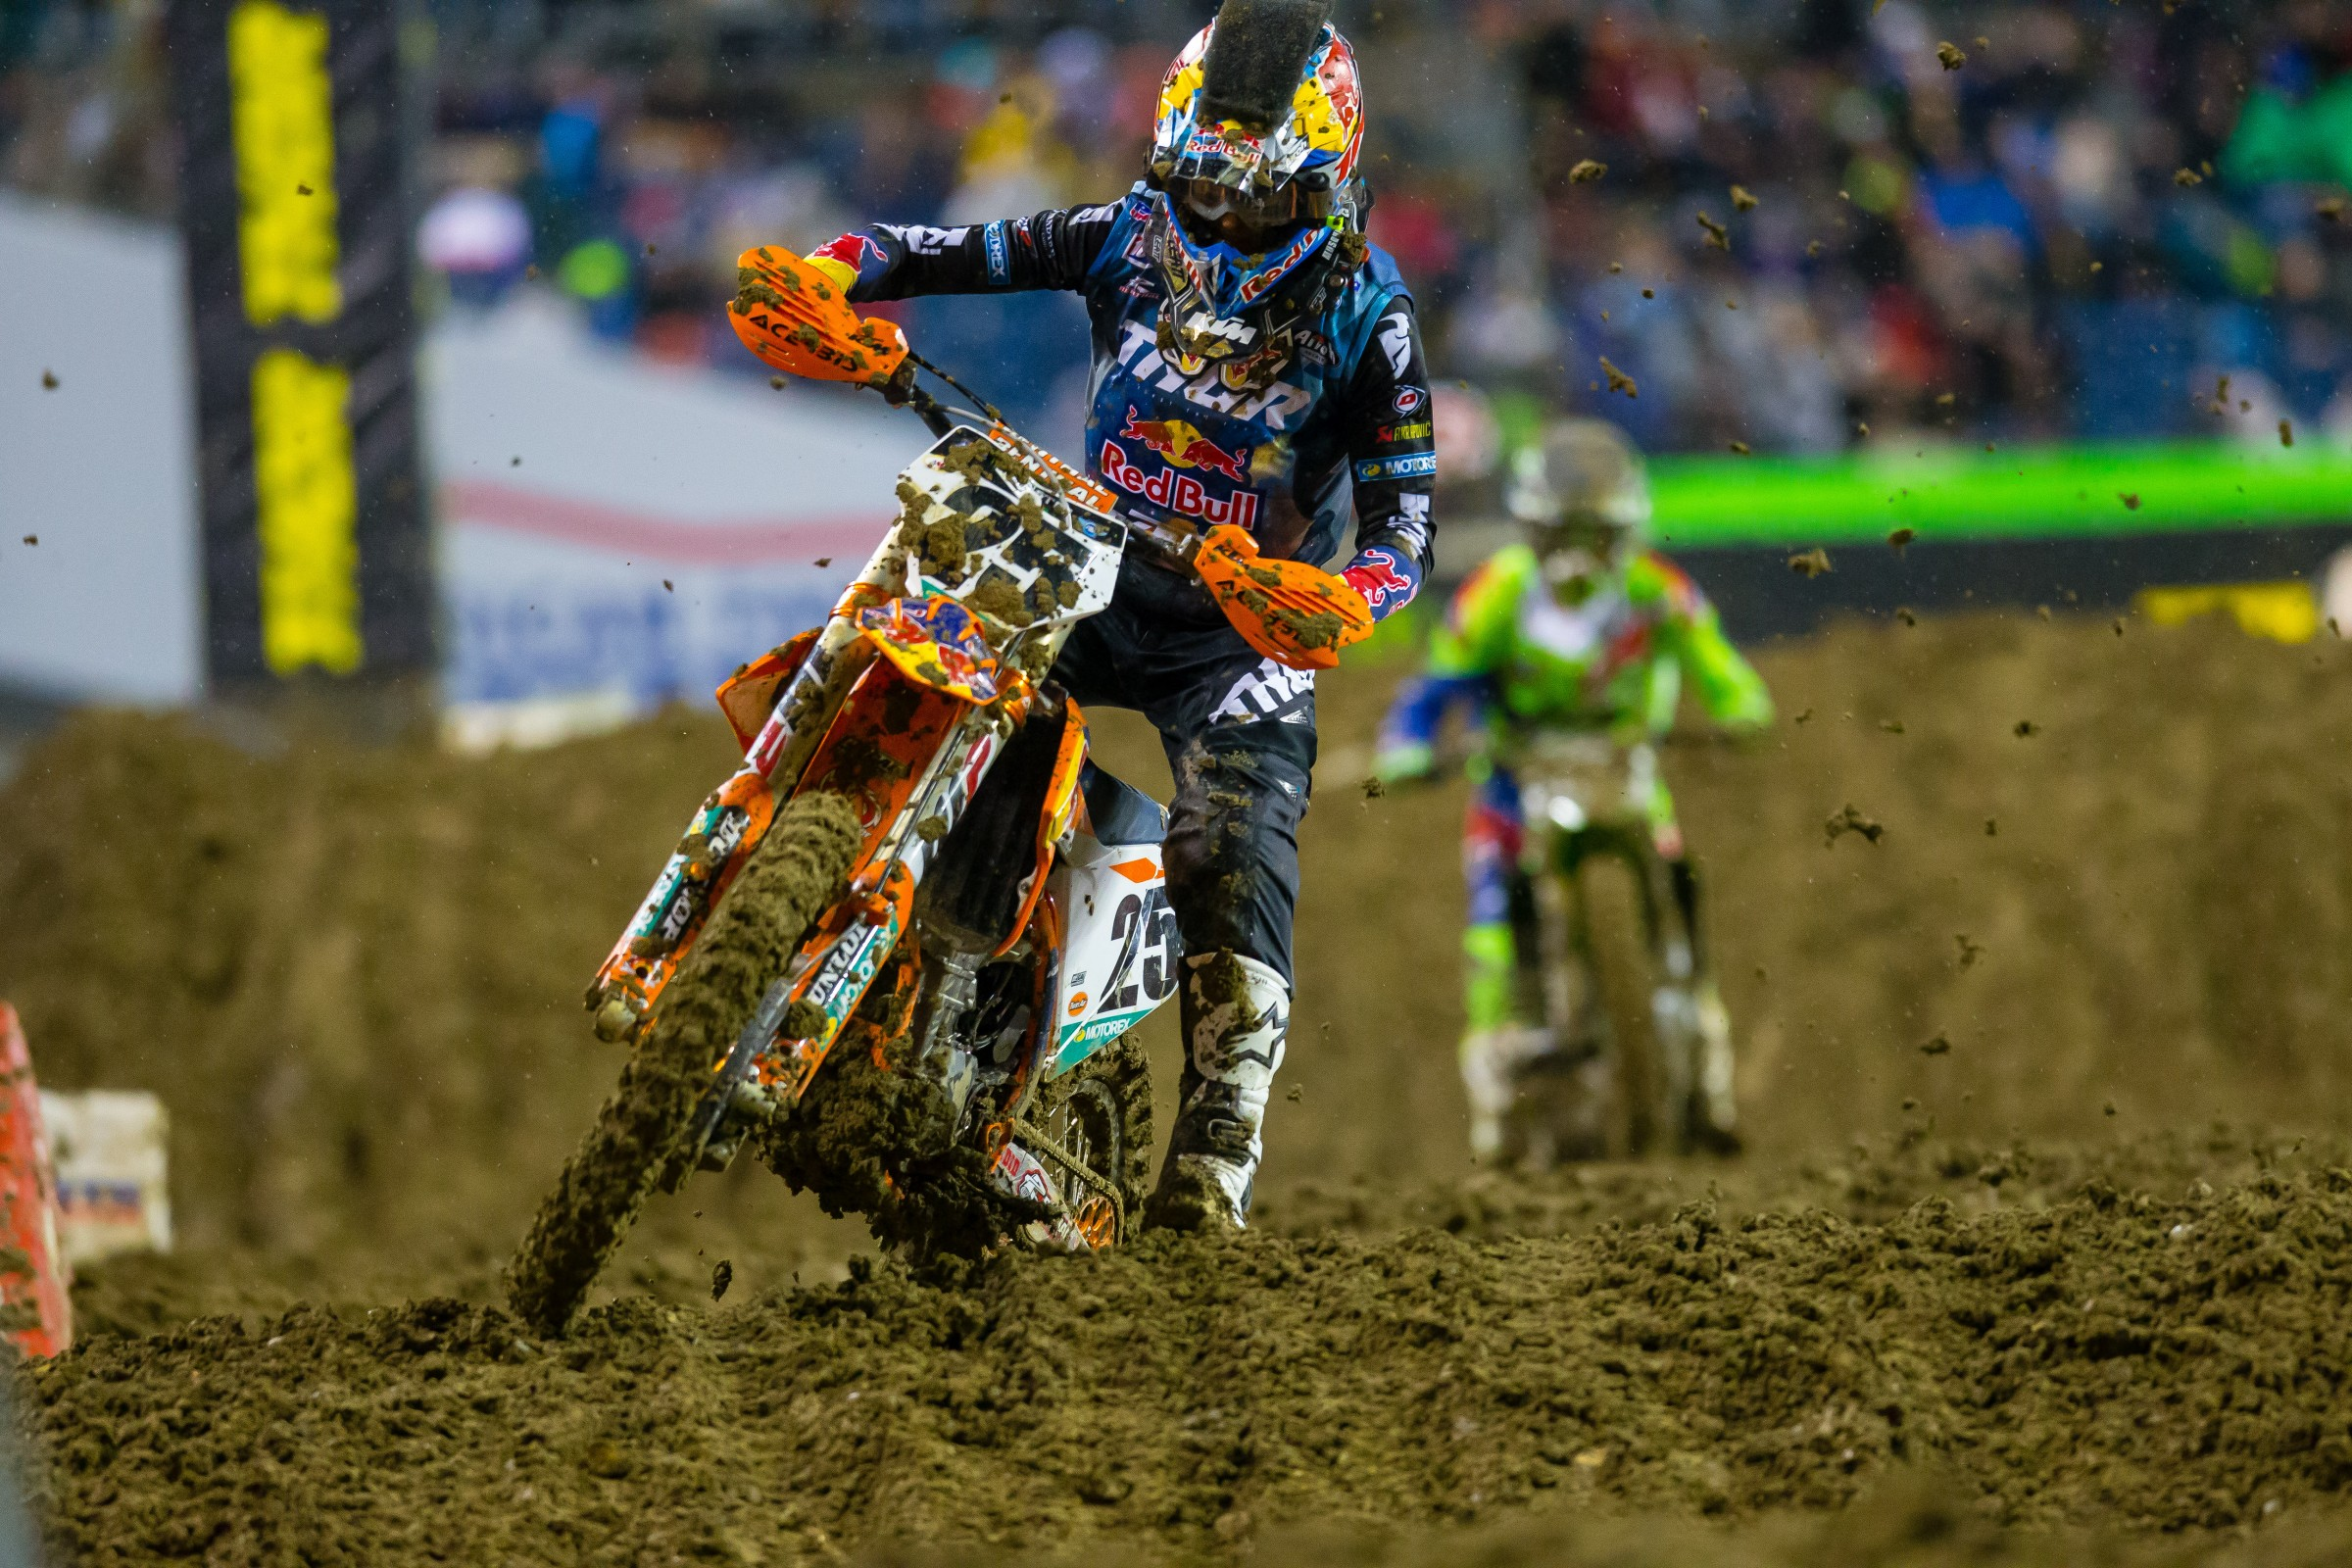 Musquin finished third in Seattle behind Tomac and Anderson.